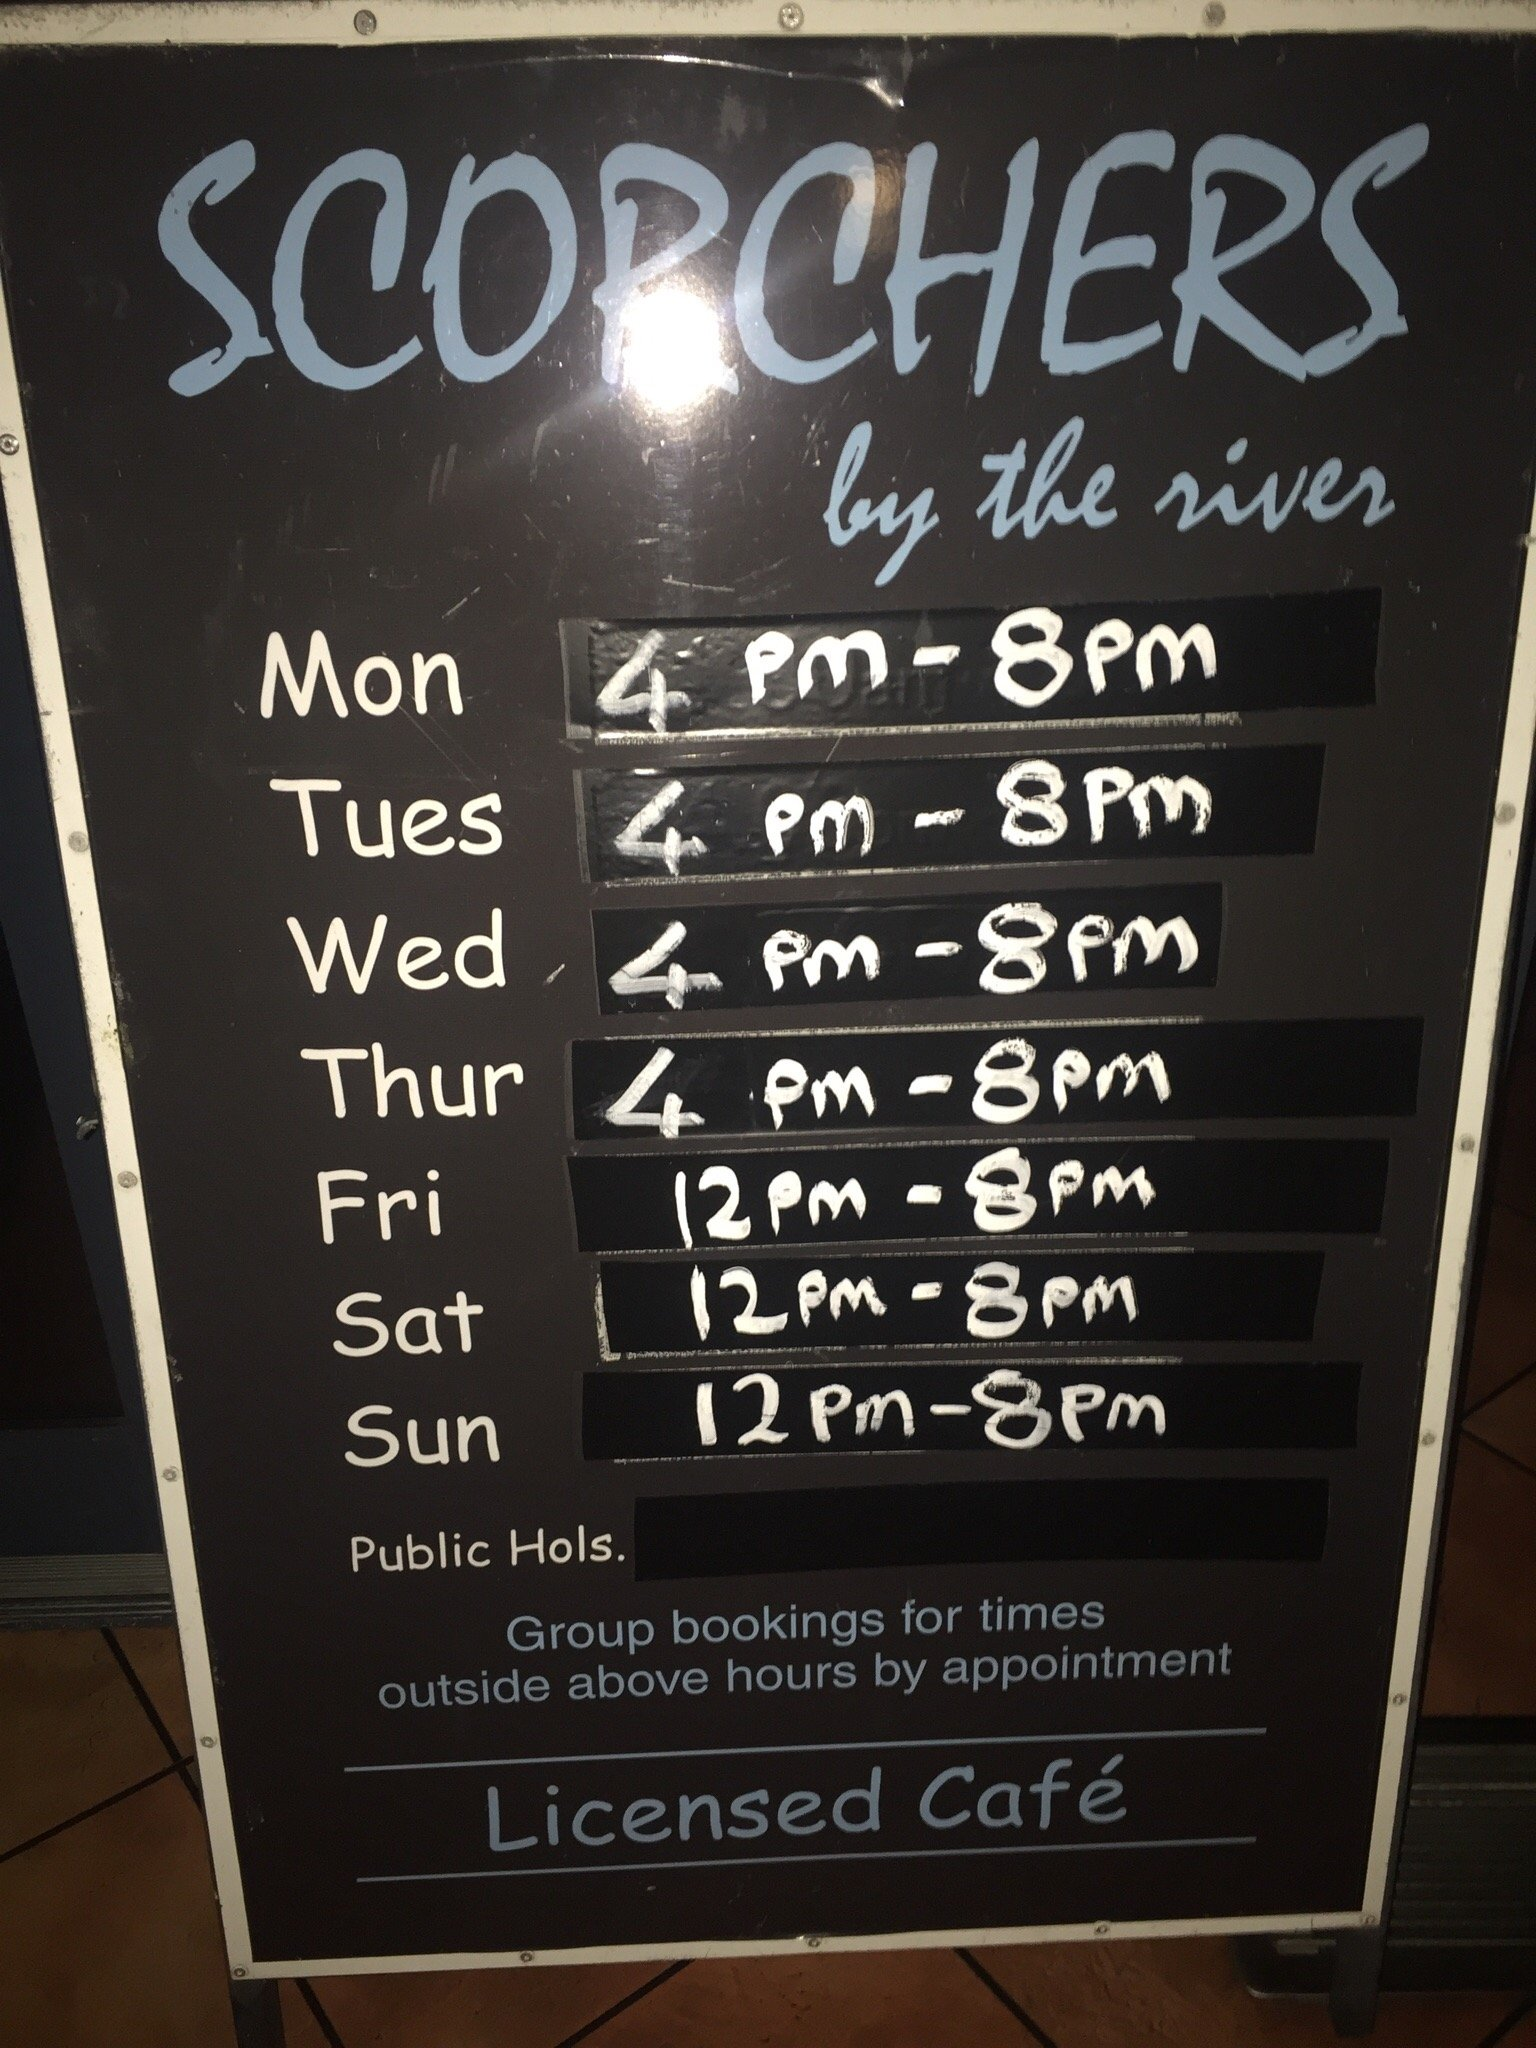 Scorchers by the River Gallery Cafe